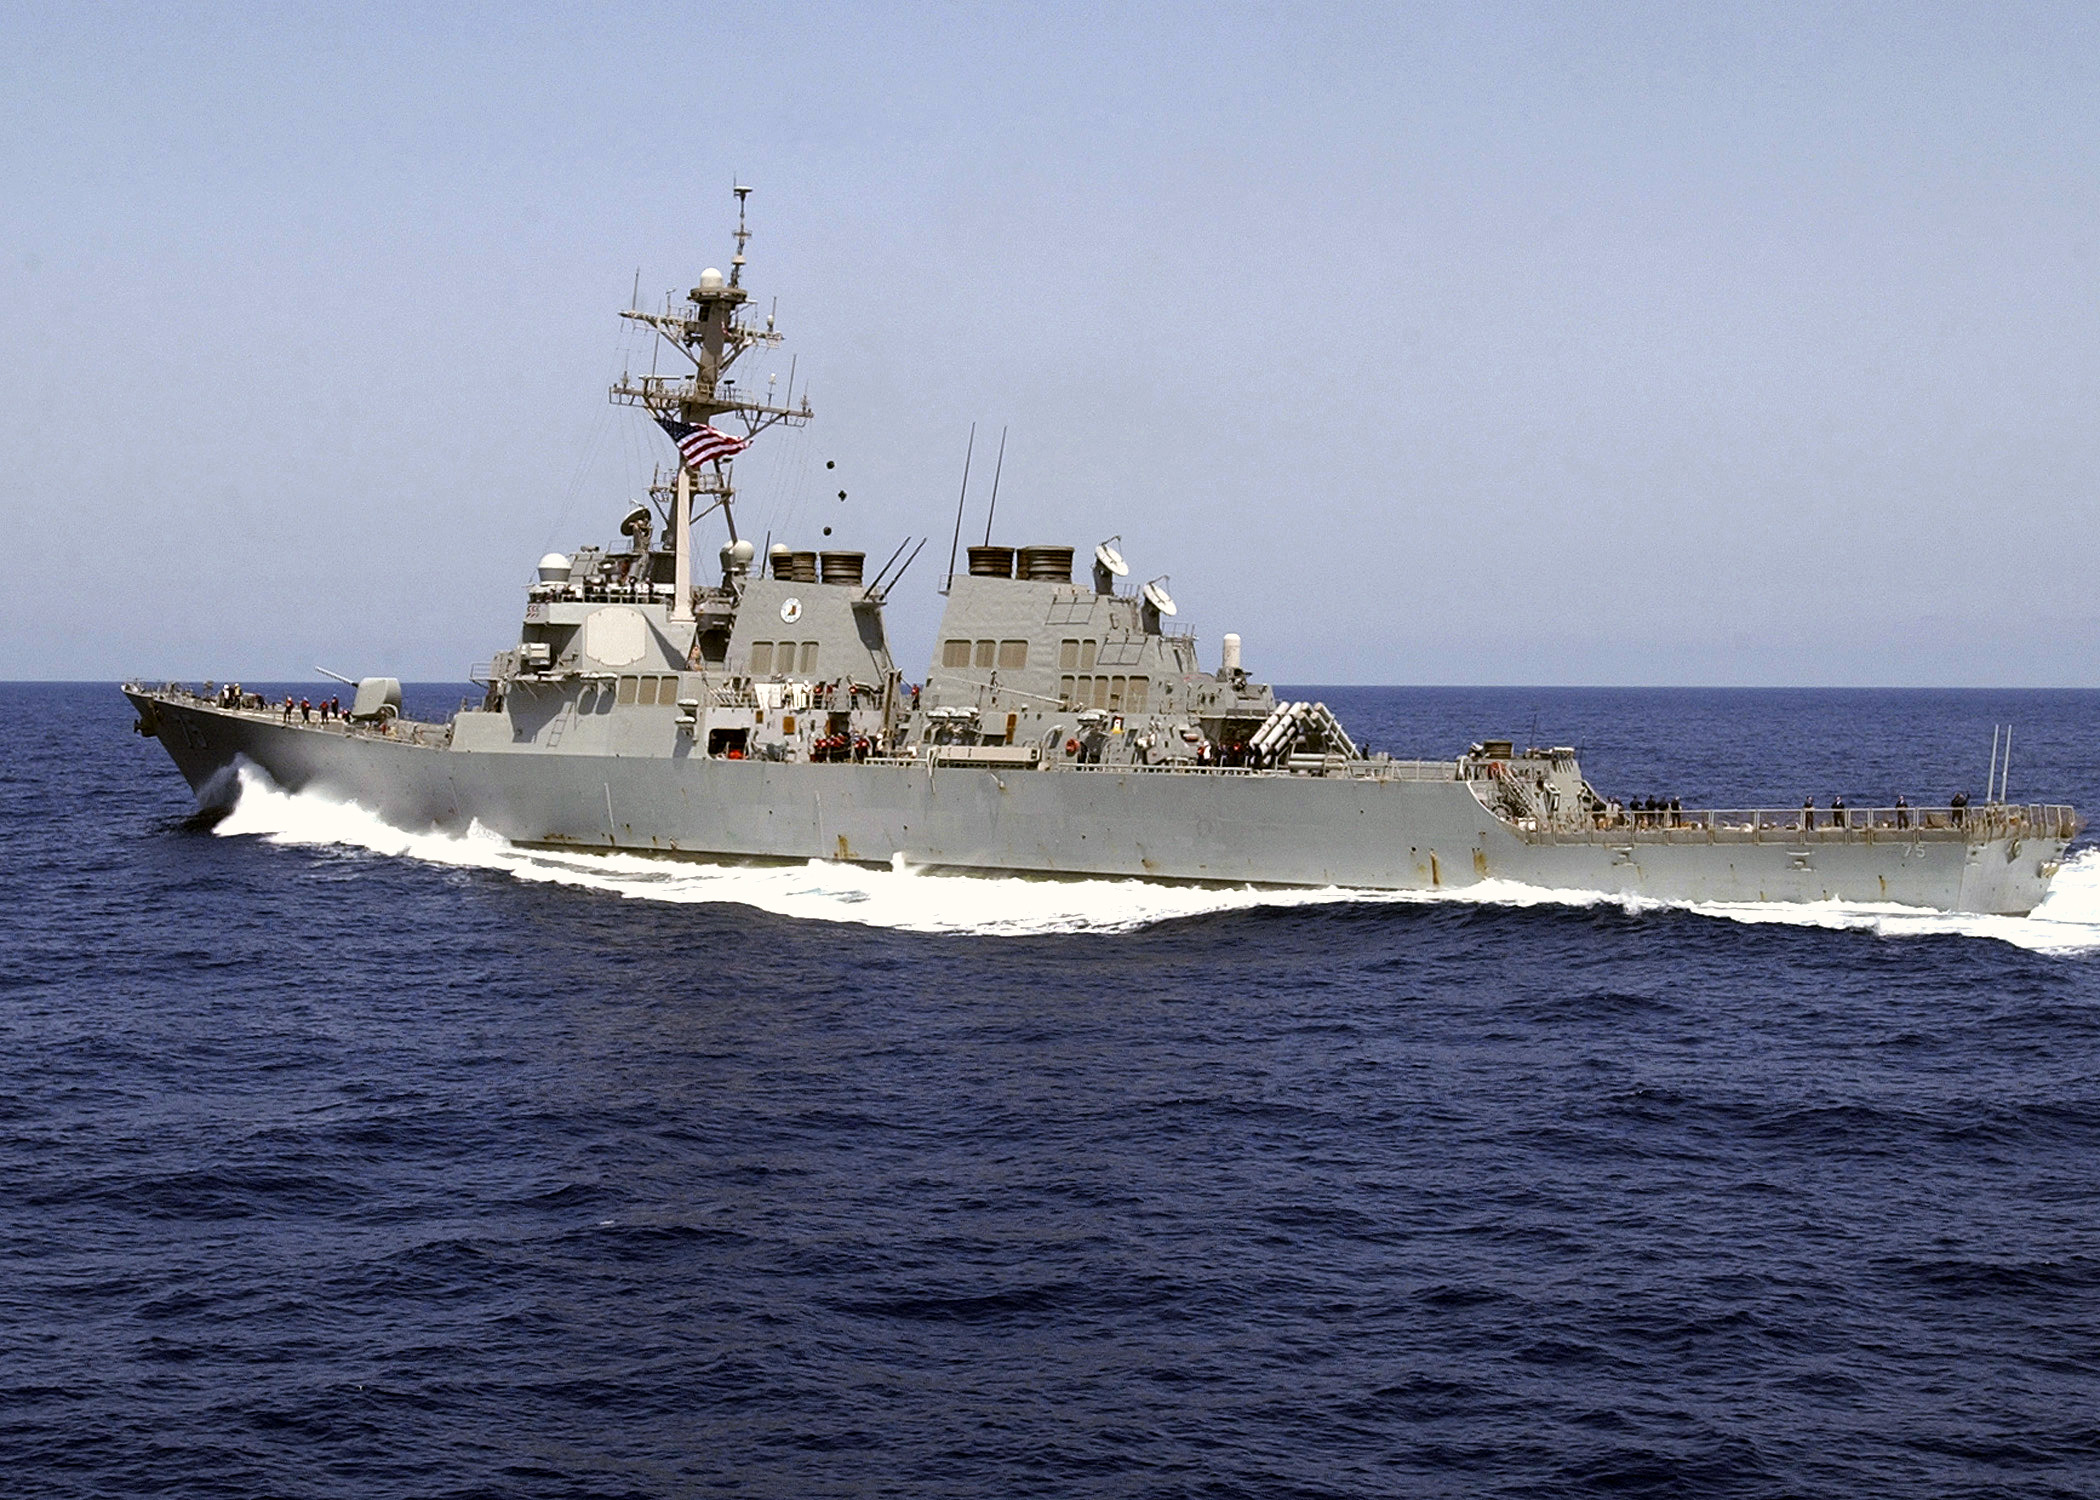 http://upload.wikimedia.org/wikipedia/commons/2/2f/USS_Donald_Cook_DDG-75.jpg